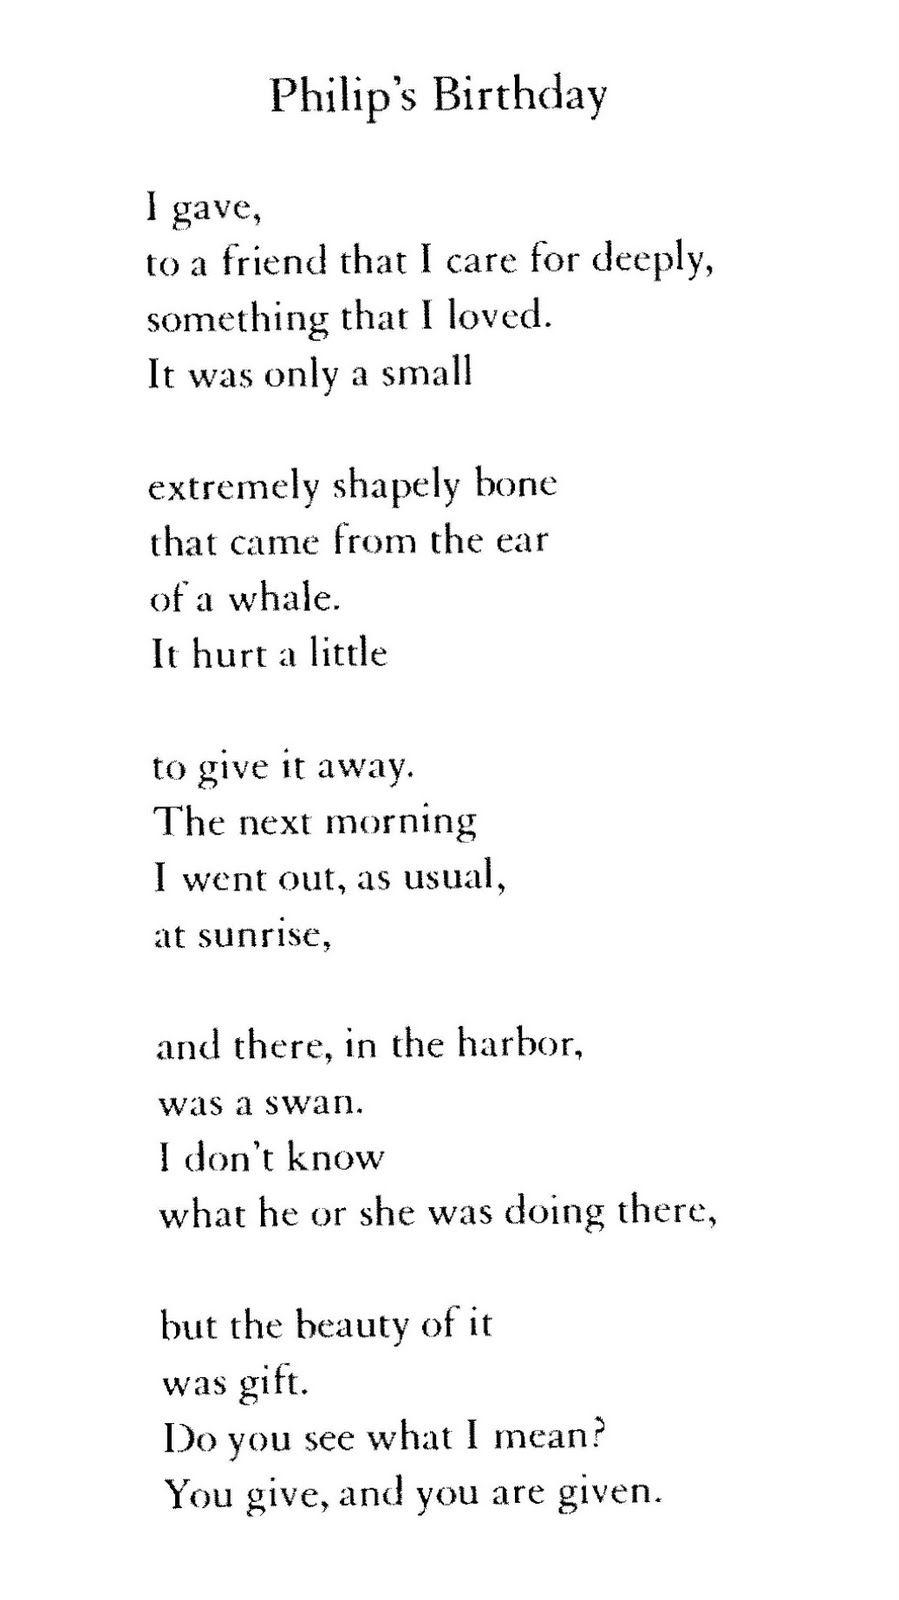 mary oliver birthday poem ; 46263ddeb634e9ed85bc12fdee1f6dc3